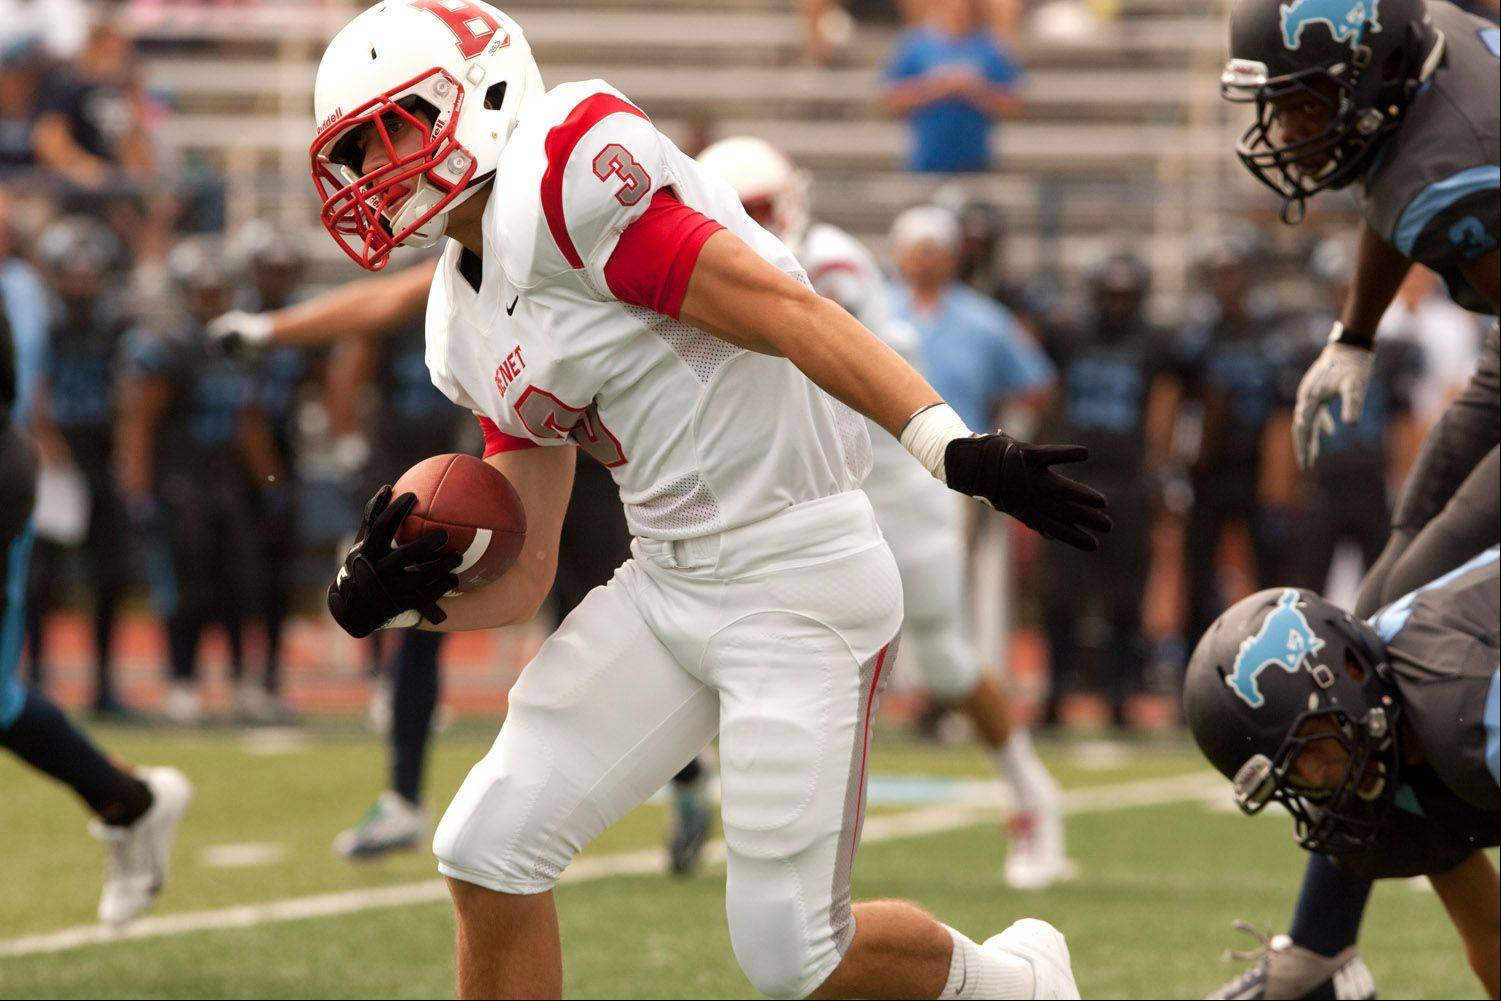 Benet Academy's Nick McTarnaghan gains yards against Downers Grove South during Saturday's season opener.